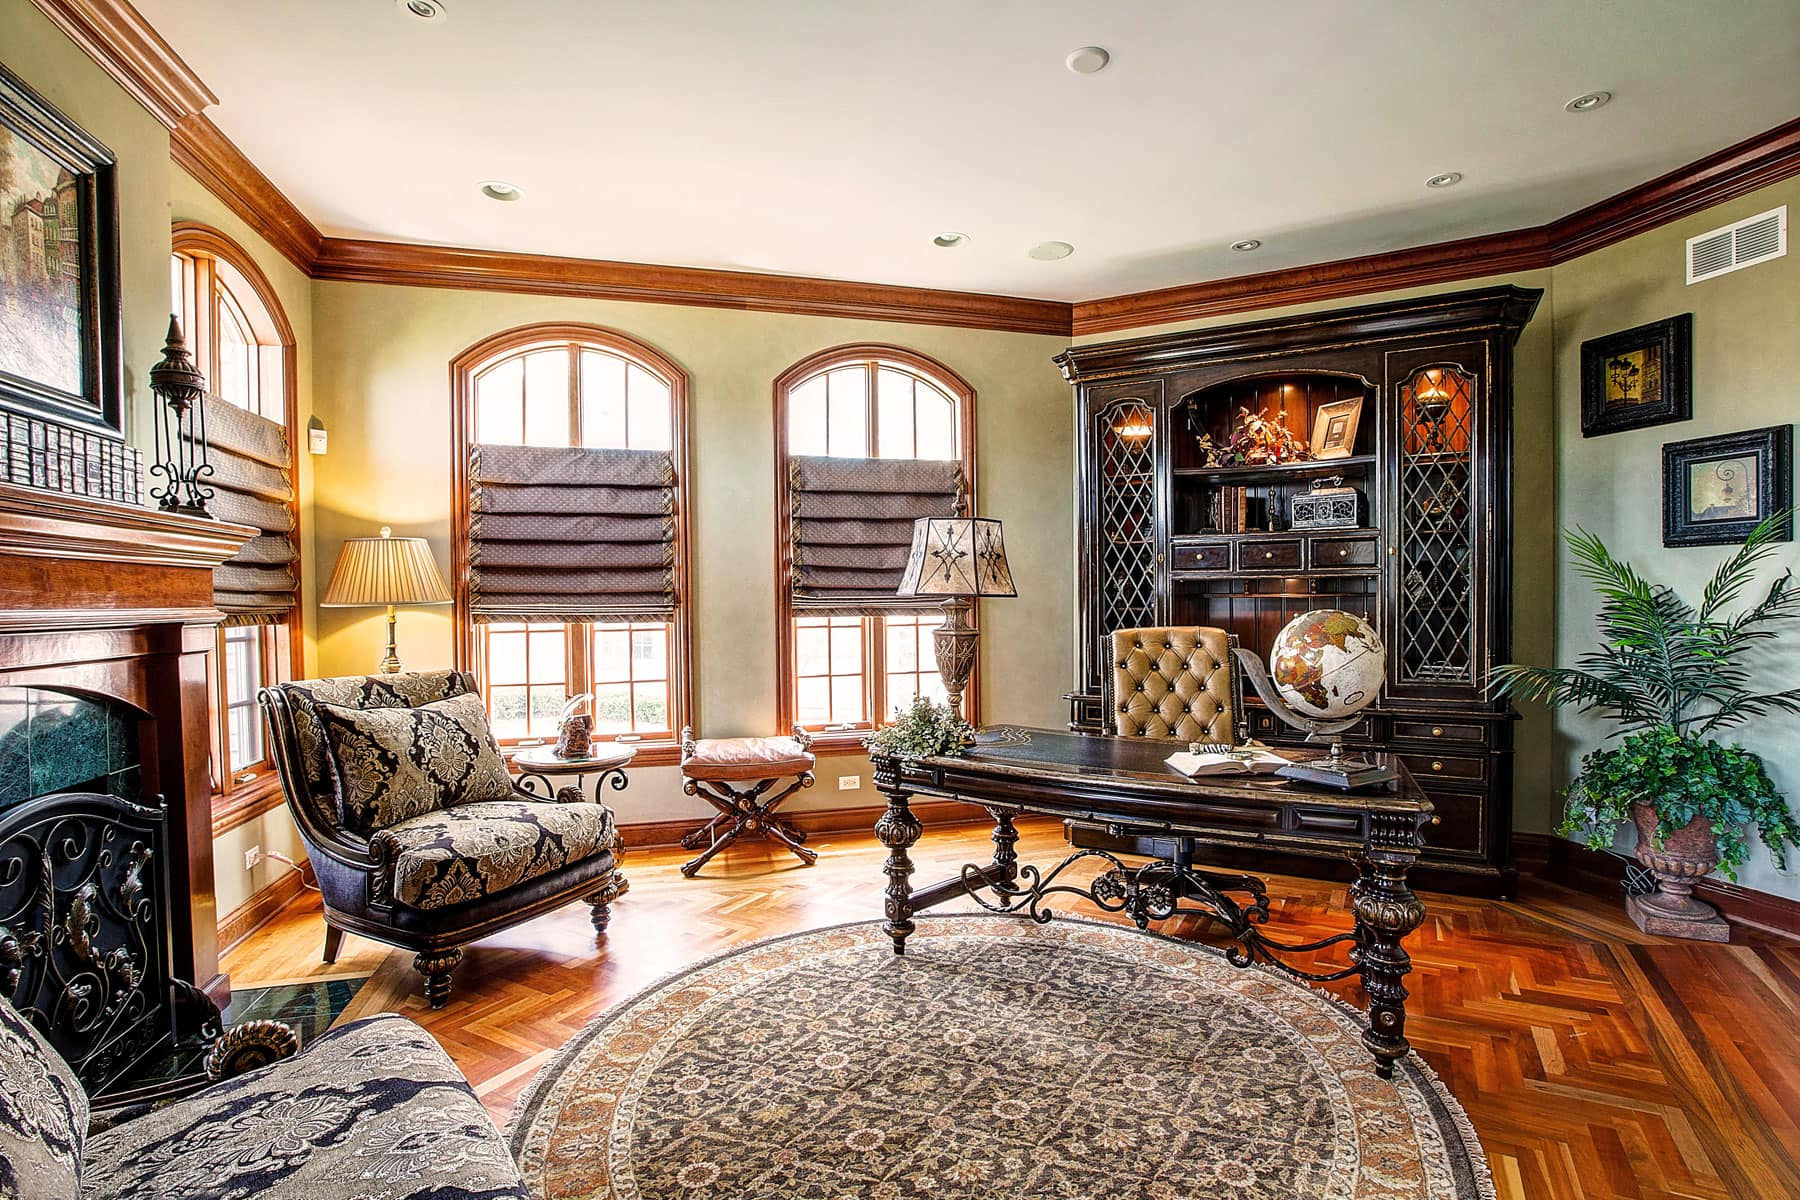 Carson Furniture Schaumburg Home Design Ideas And Pictures